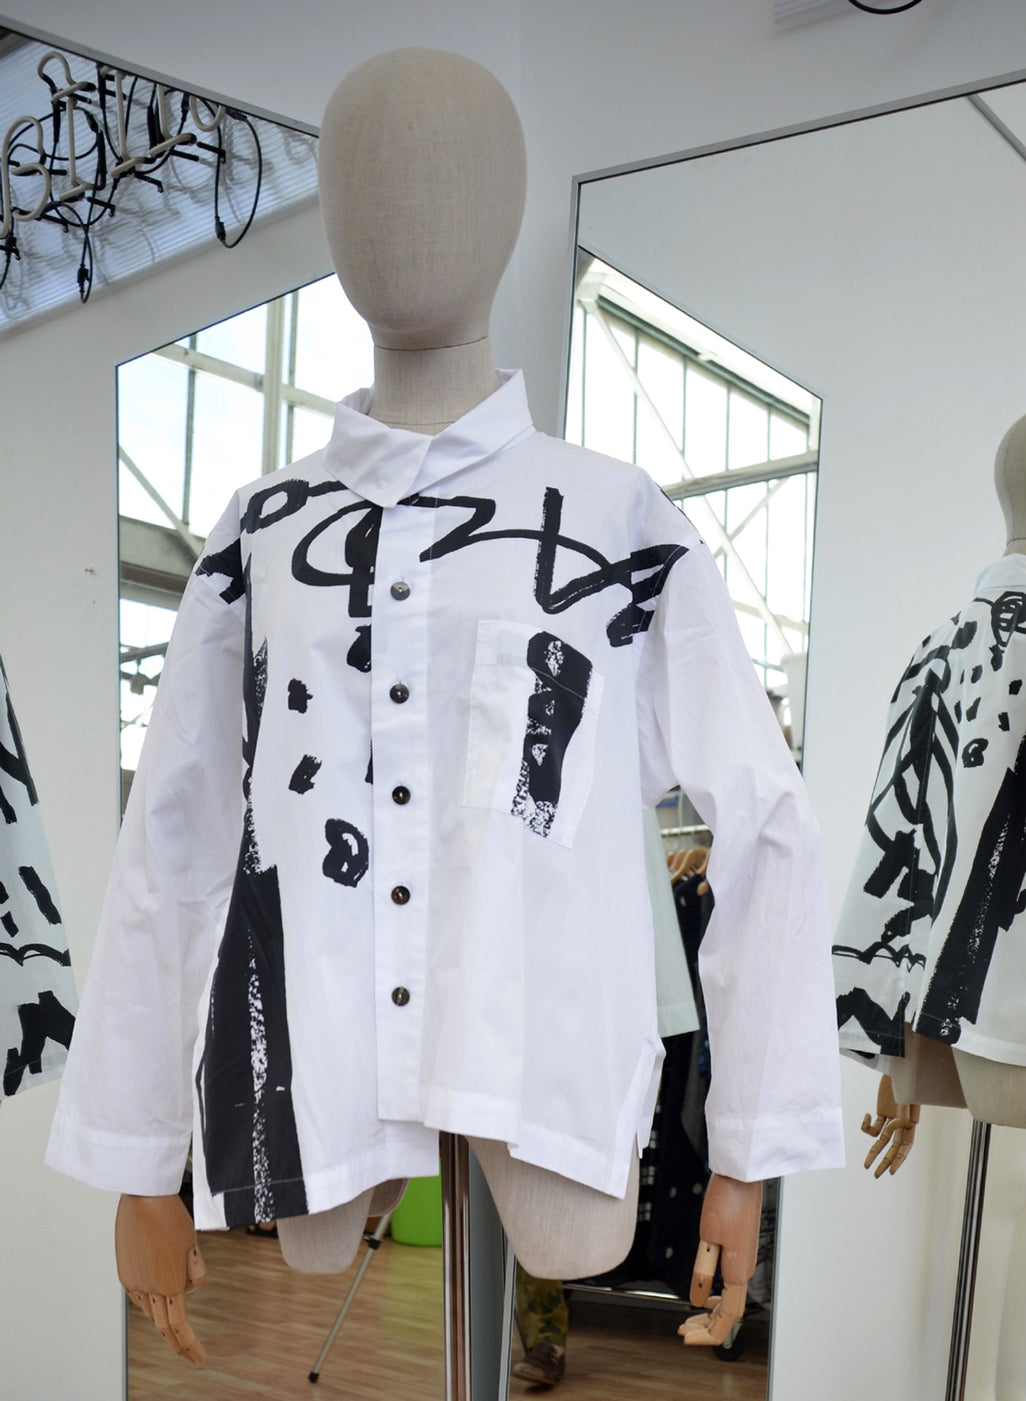 Moyuru White Cotton Shirt Black Print Art Number 183416